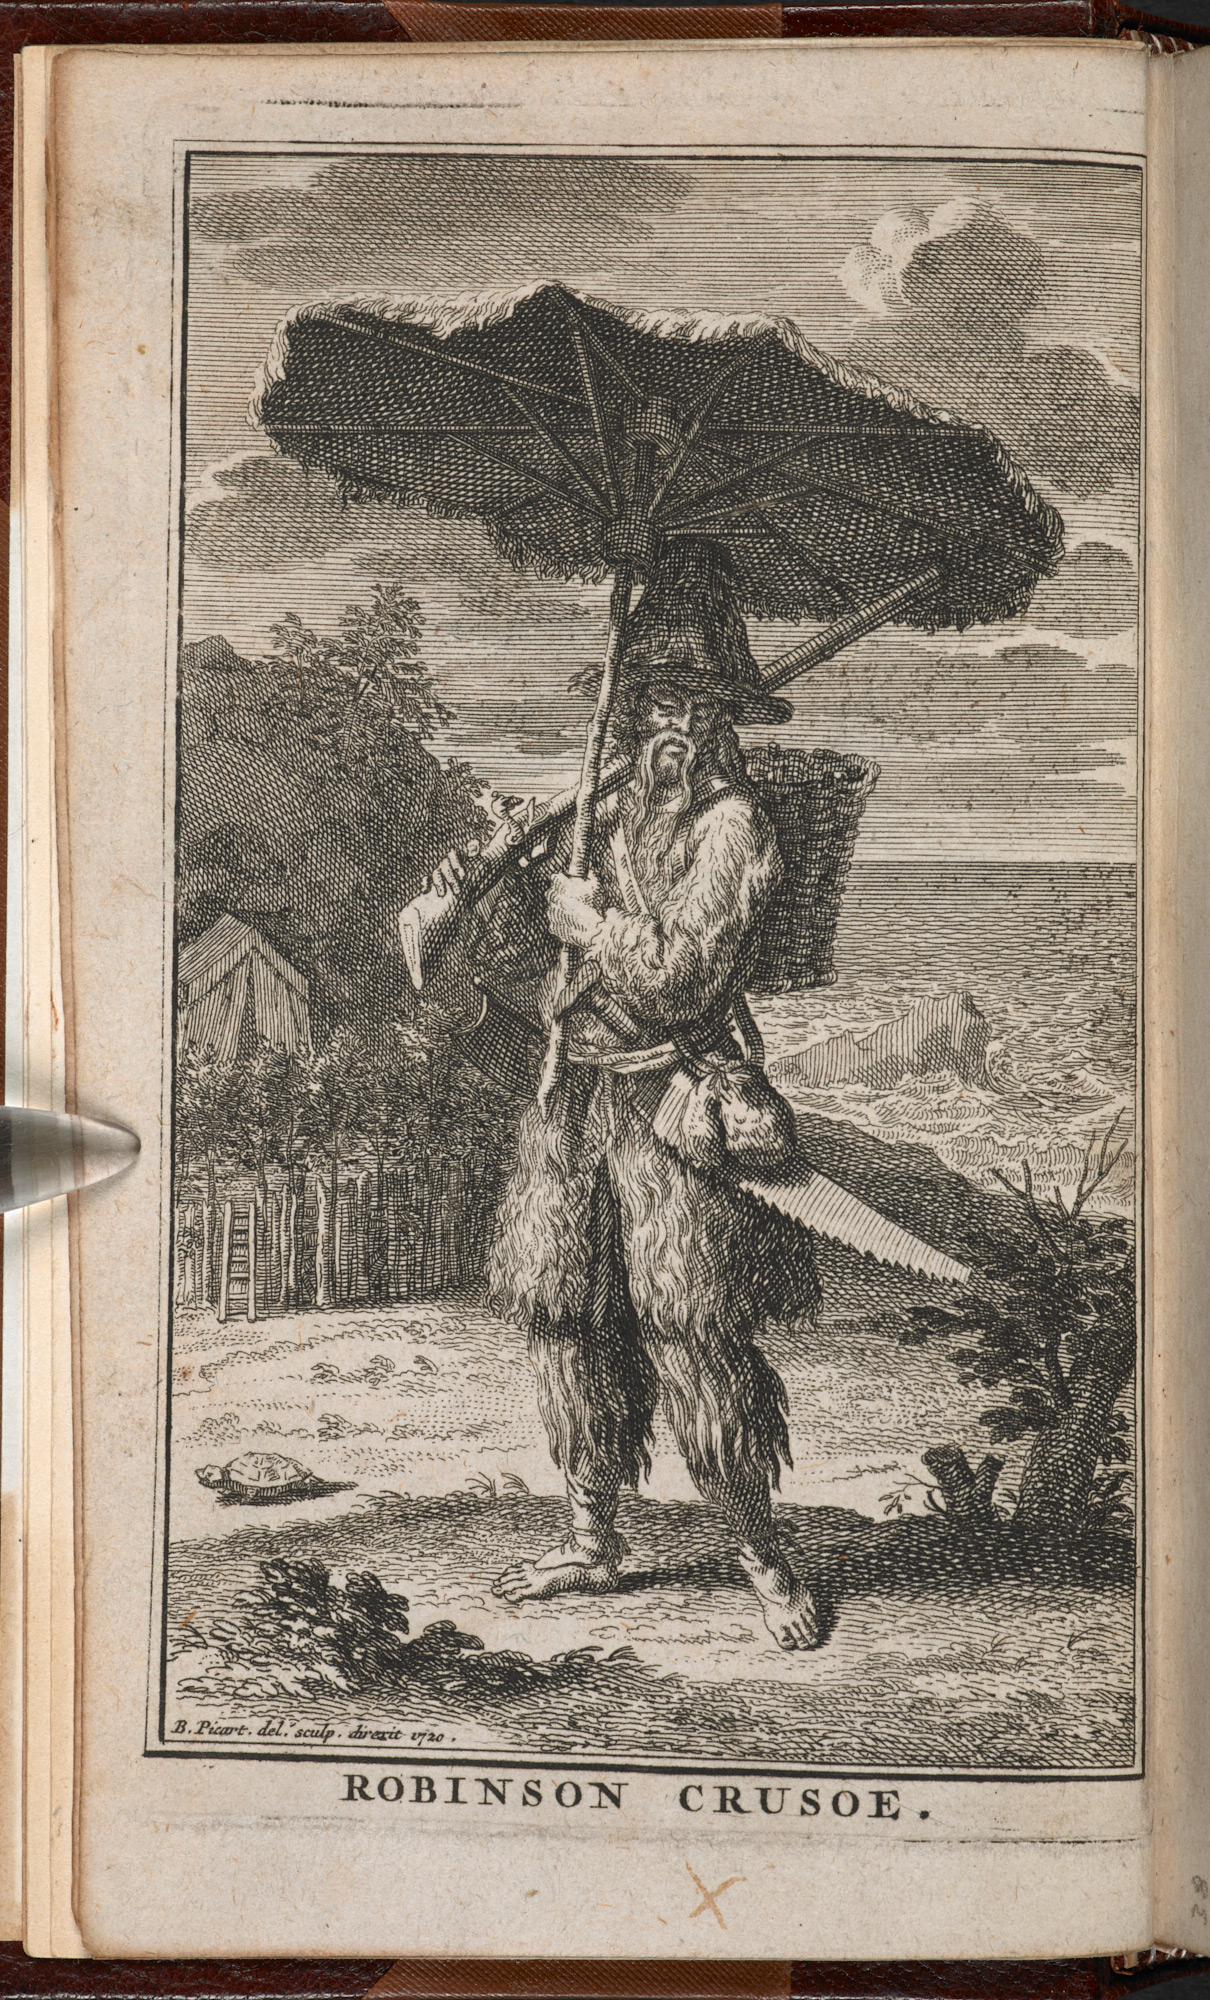 French edition of Robinson Crusoe, 1720